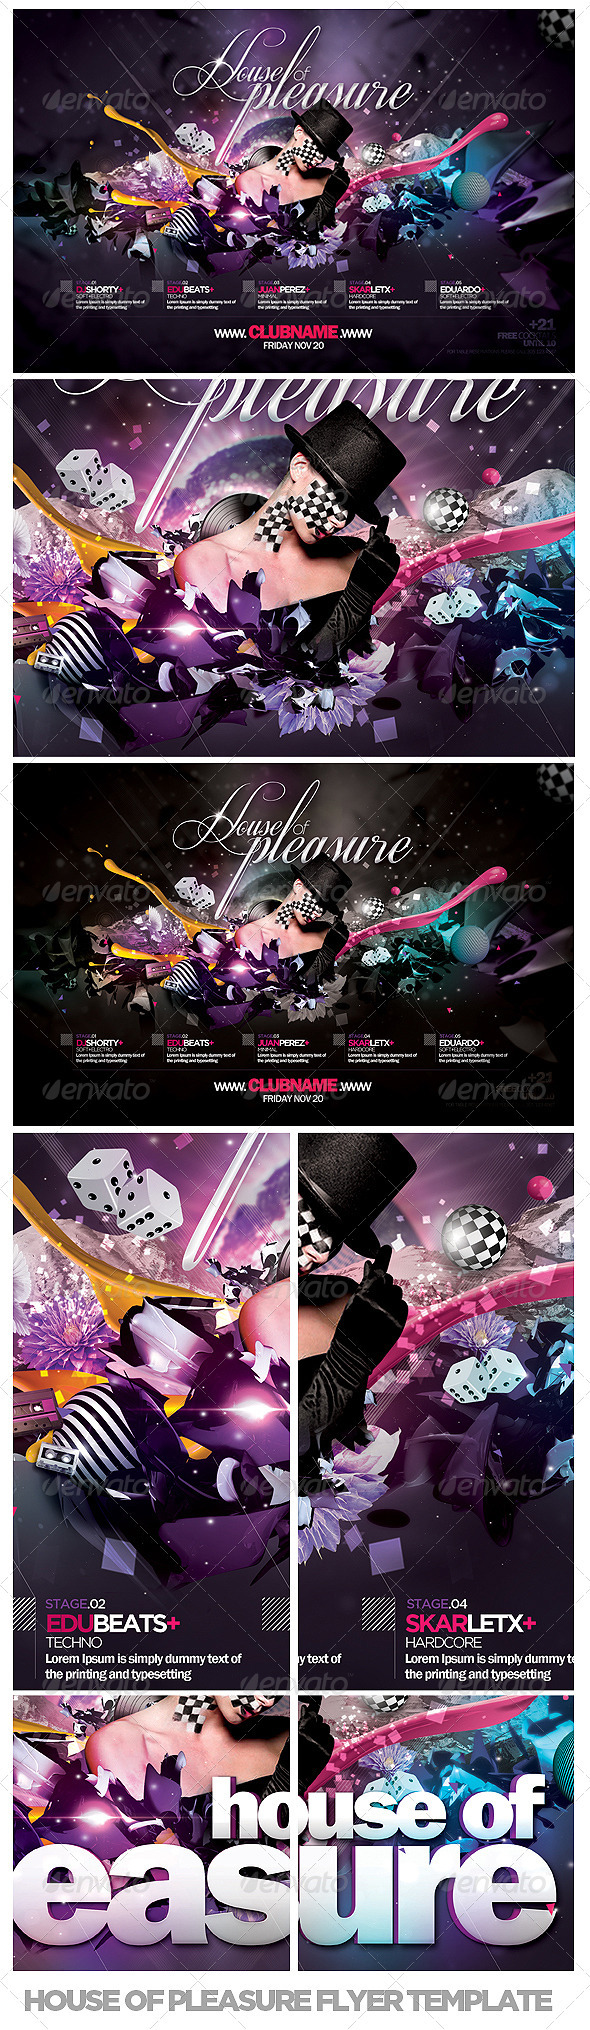 House Of Pleasure Flyer Template - Events Flyers